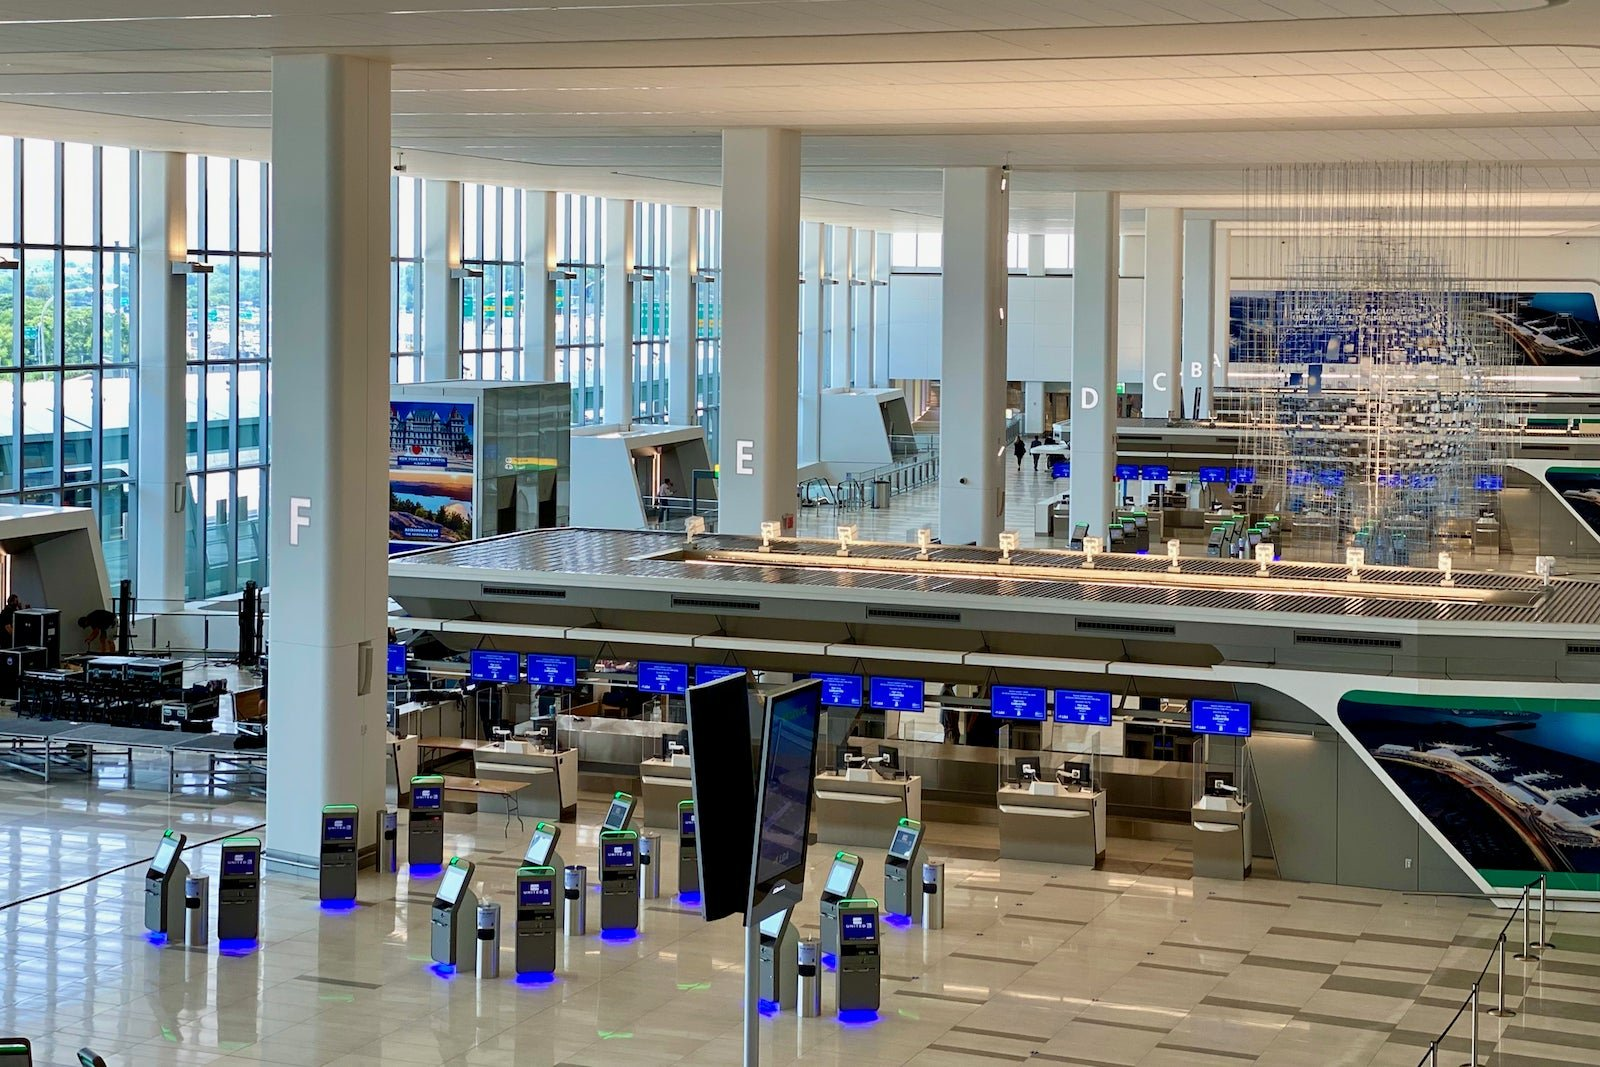 LaGuardia's new terminal is a major upgrade — see for yourself